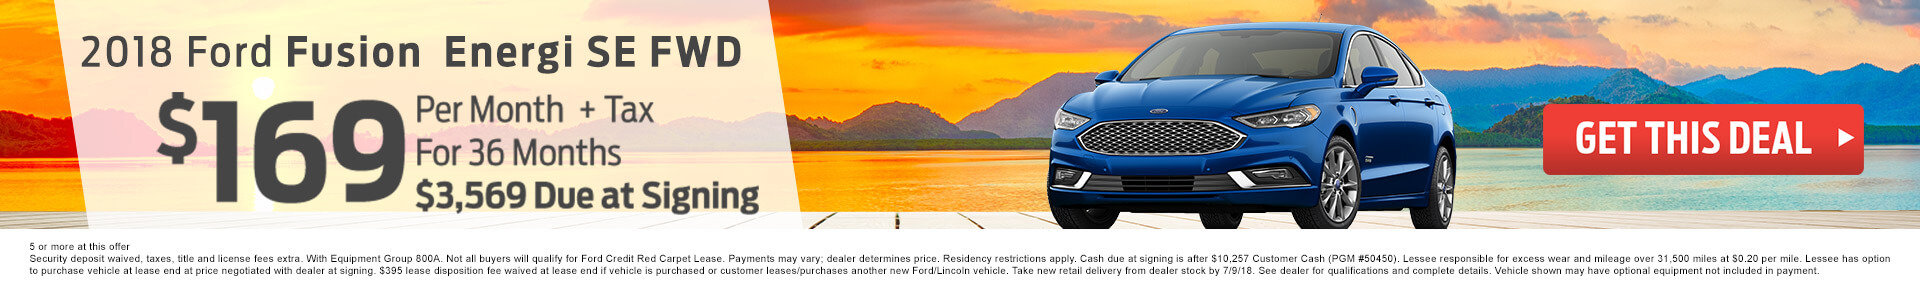 2018 Ford Fusion $169